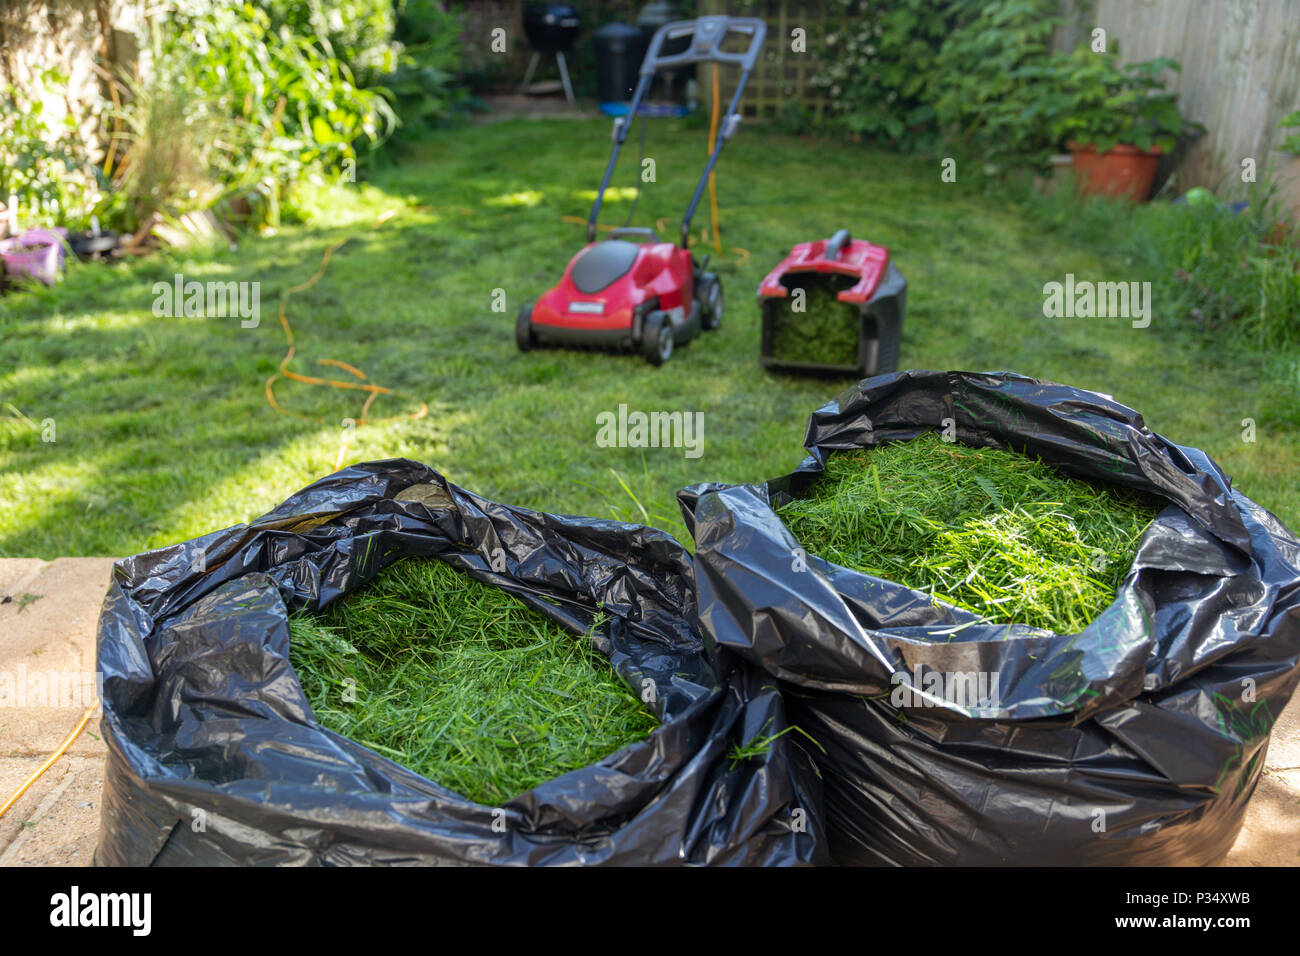 Mowing a household garden lawn with black bag of grass clippings - Stock Image